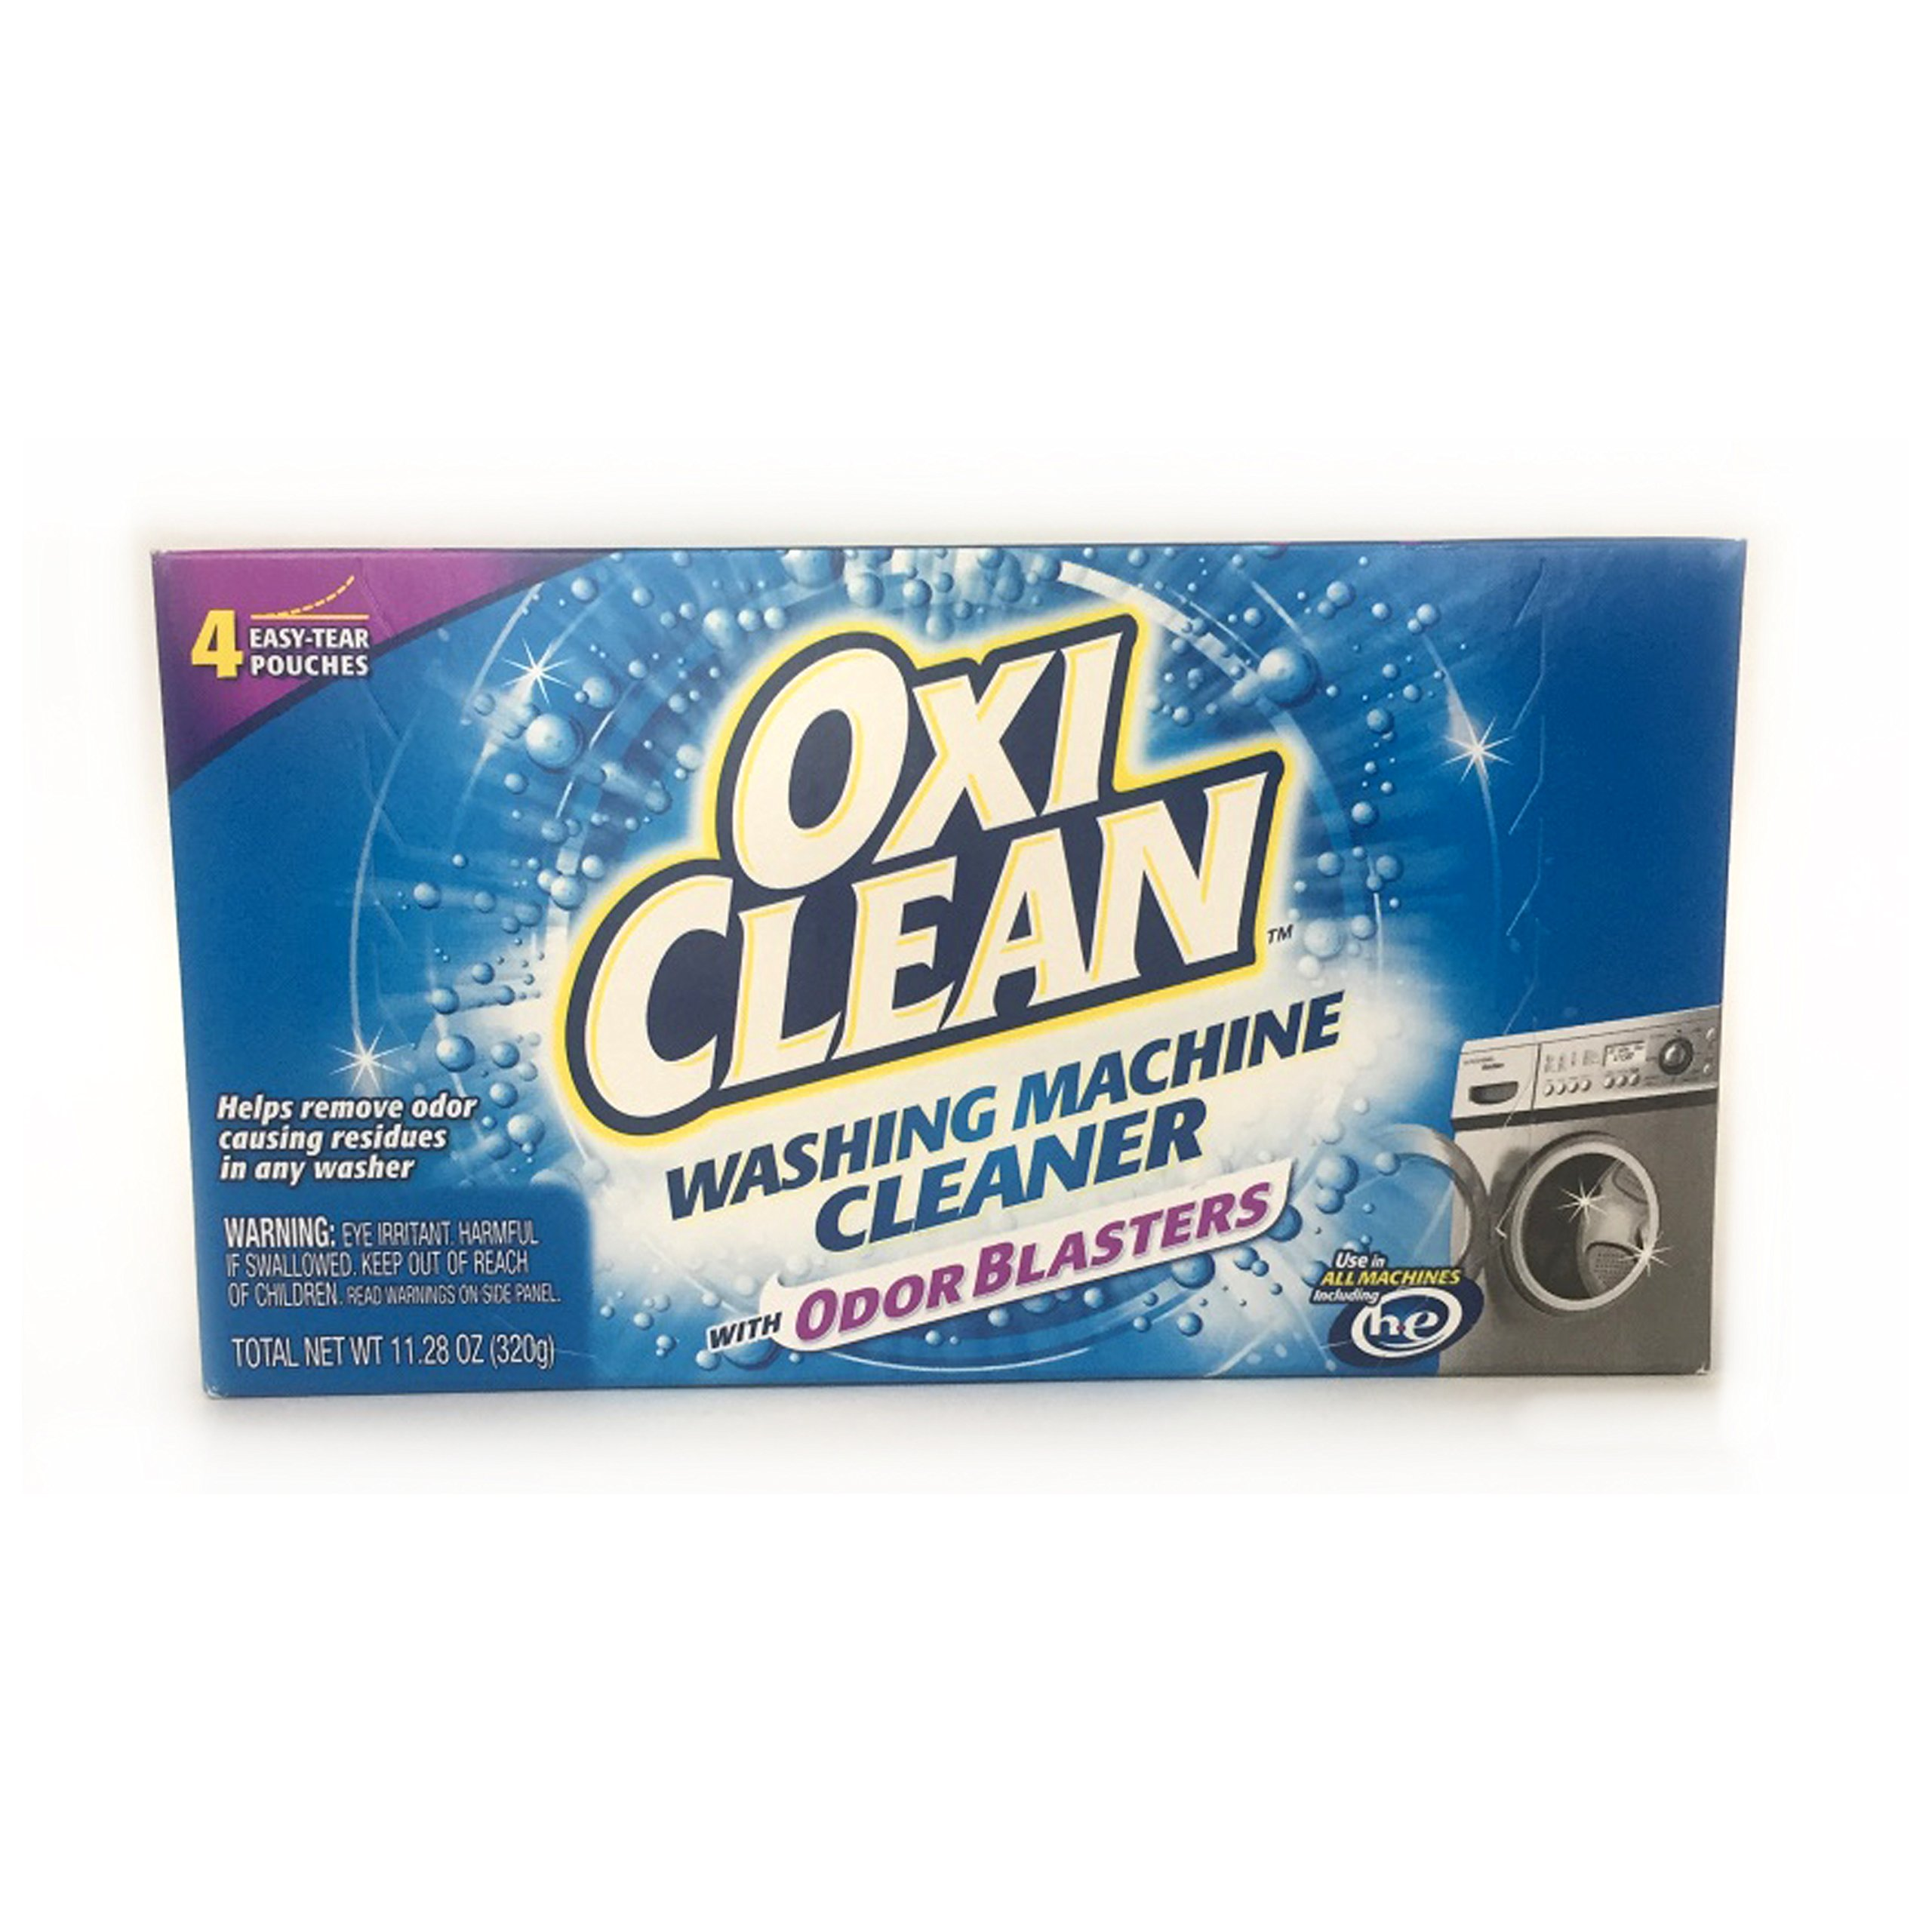 Oxiclean Washing Machine Cleaner, 1 Pack of 4 Easy-tear Pouches ( Pack of 2 )